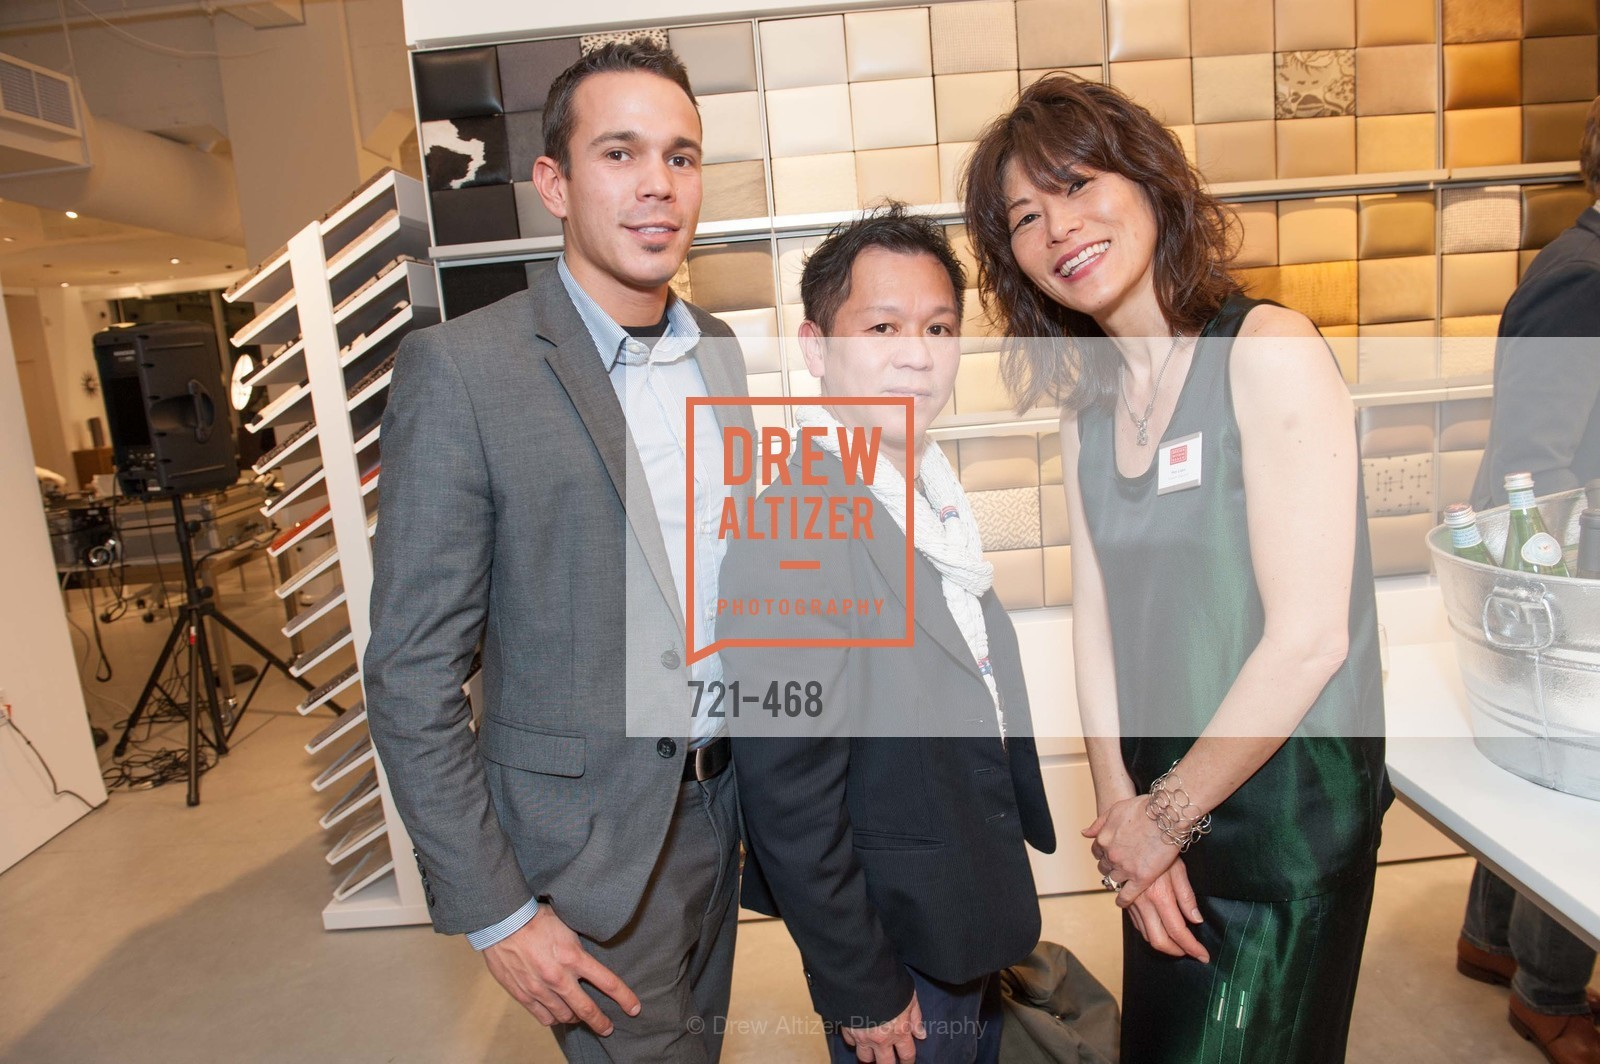 Mykul Chretien, Baby Chic, Hiro Lazares, DESIGN WITHIN REACH Studio Opening, US. US, January 21st, 2014,Drew Altizer, Drew Altizer Photography, full-service agency, private events, San Francisco photographer, photographer california